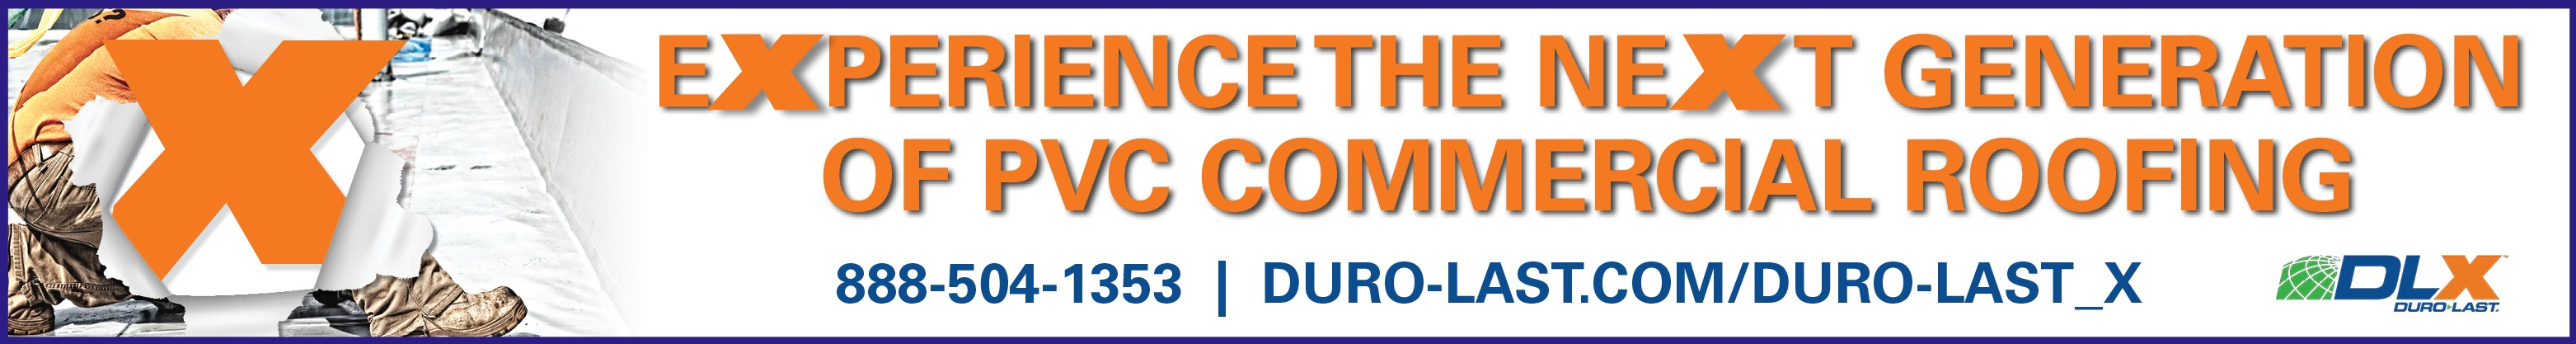 Duro-Last - Banner Ad - Experience the Next Generation of PVC Commercial Roofing